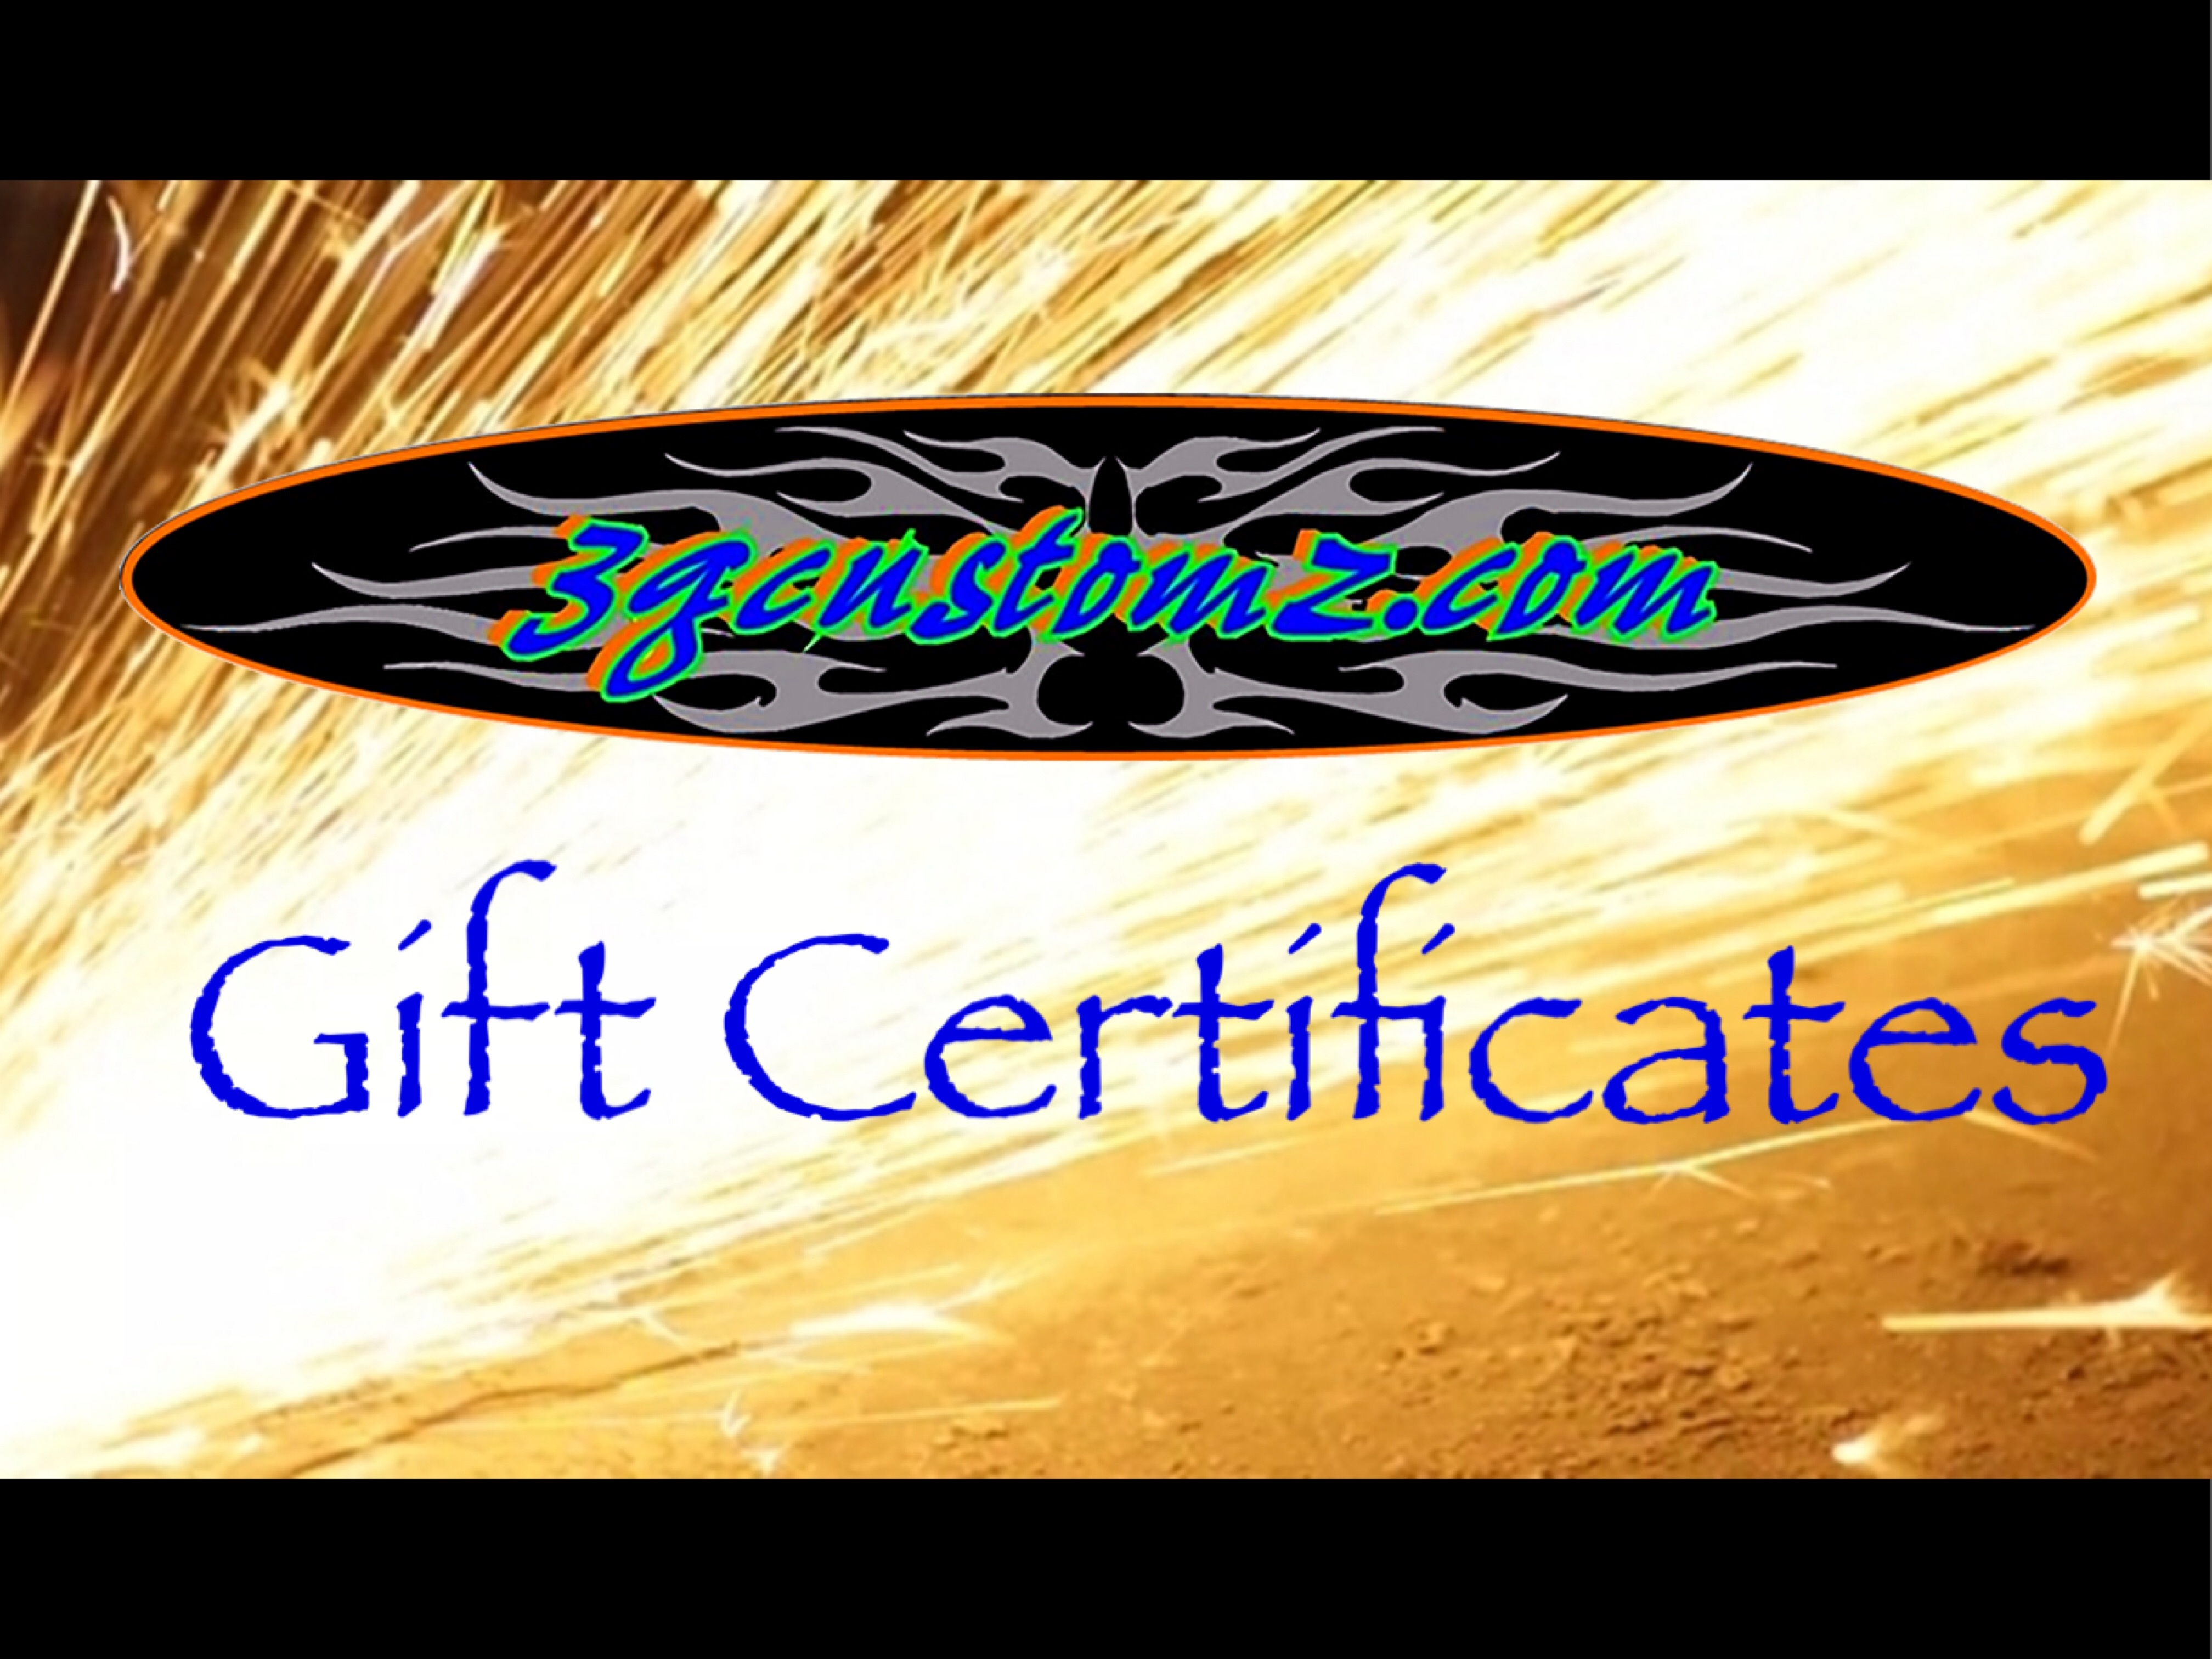 3g-Gift Certificate